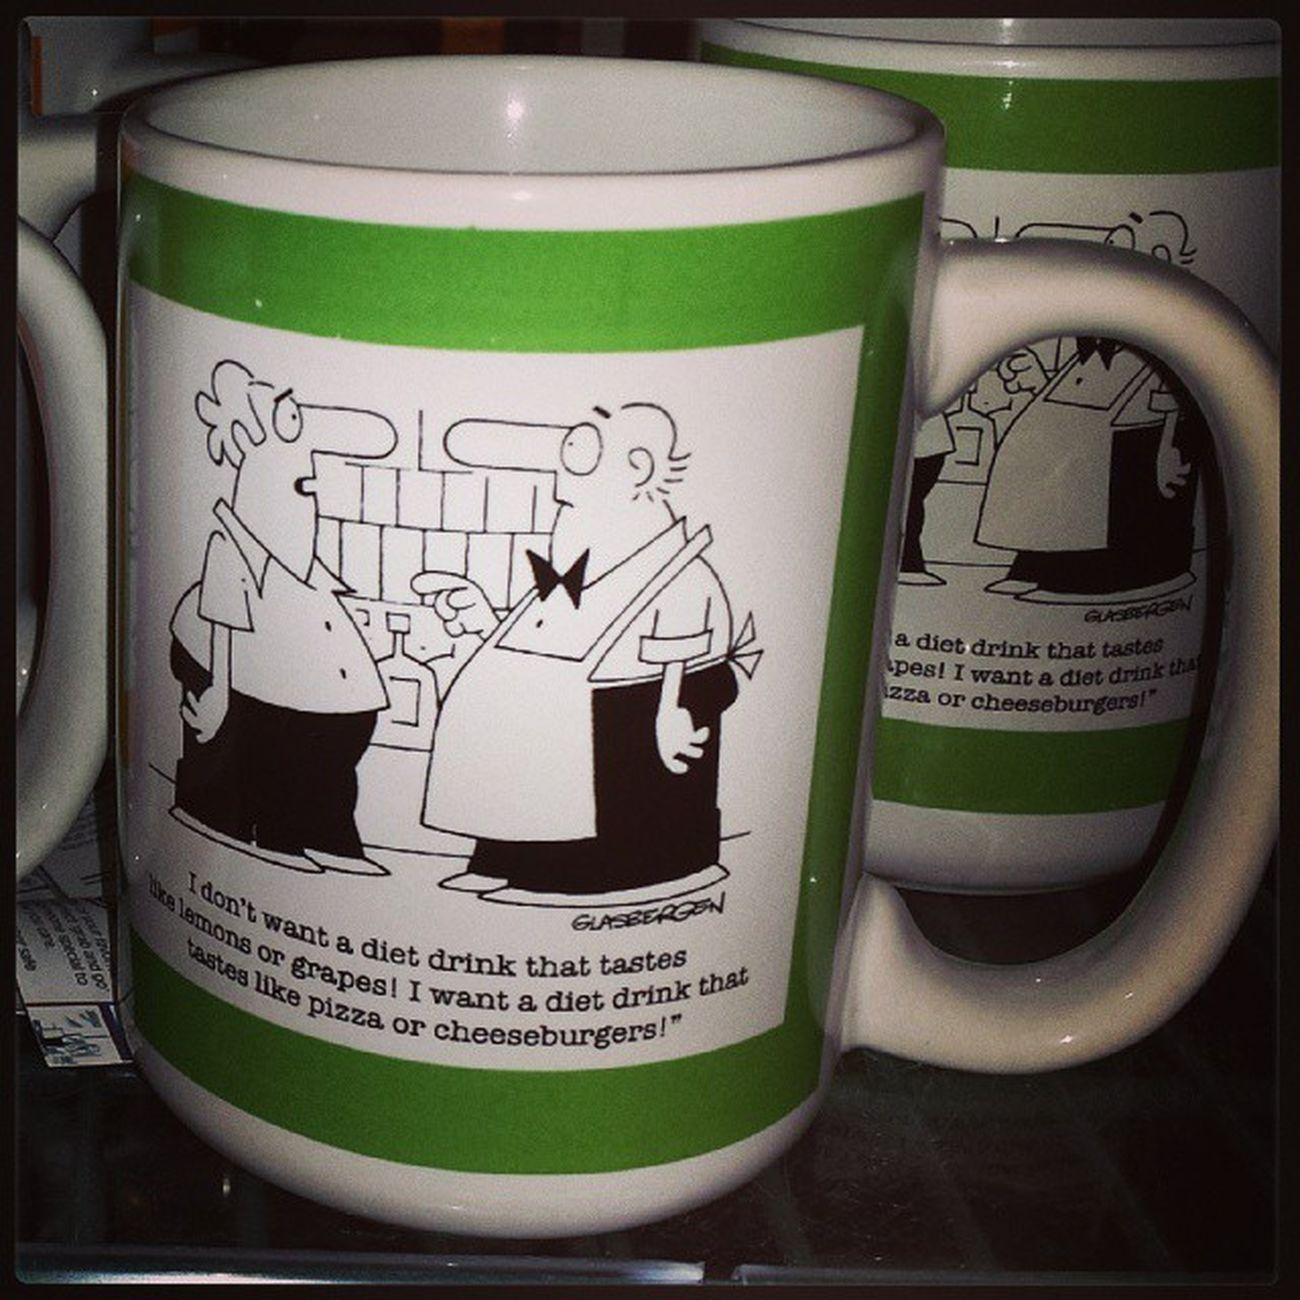 This mug made me laugh so loud I could feel coffee in my nose.